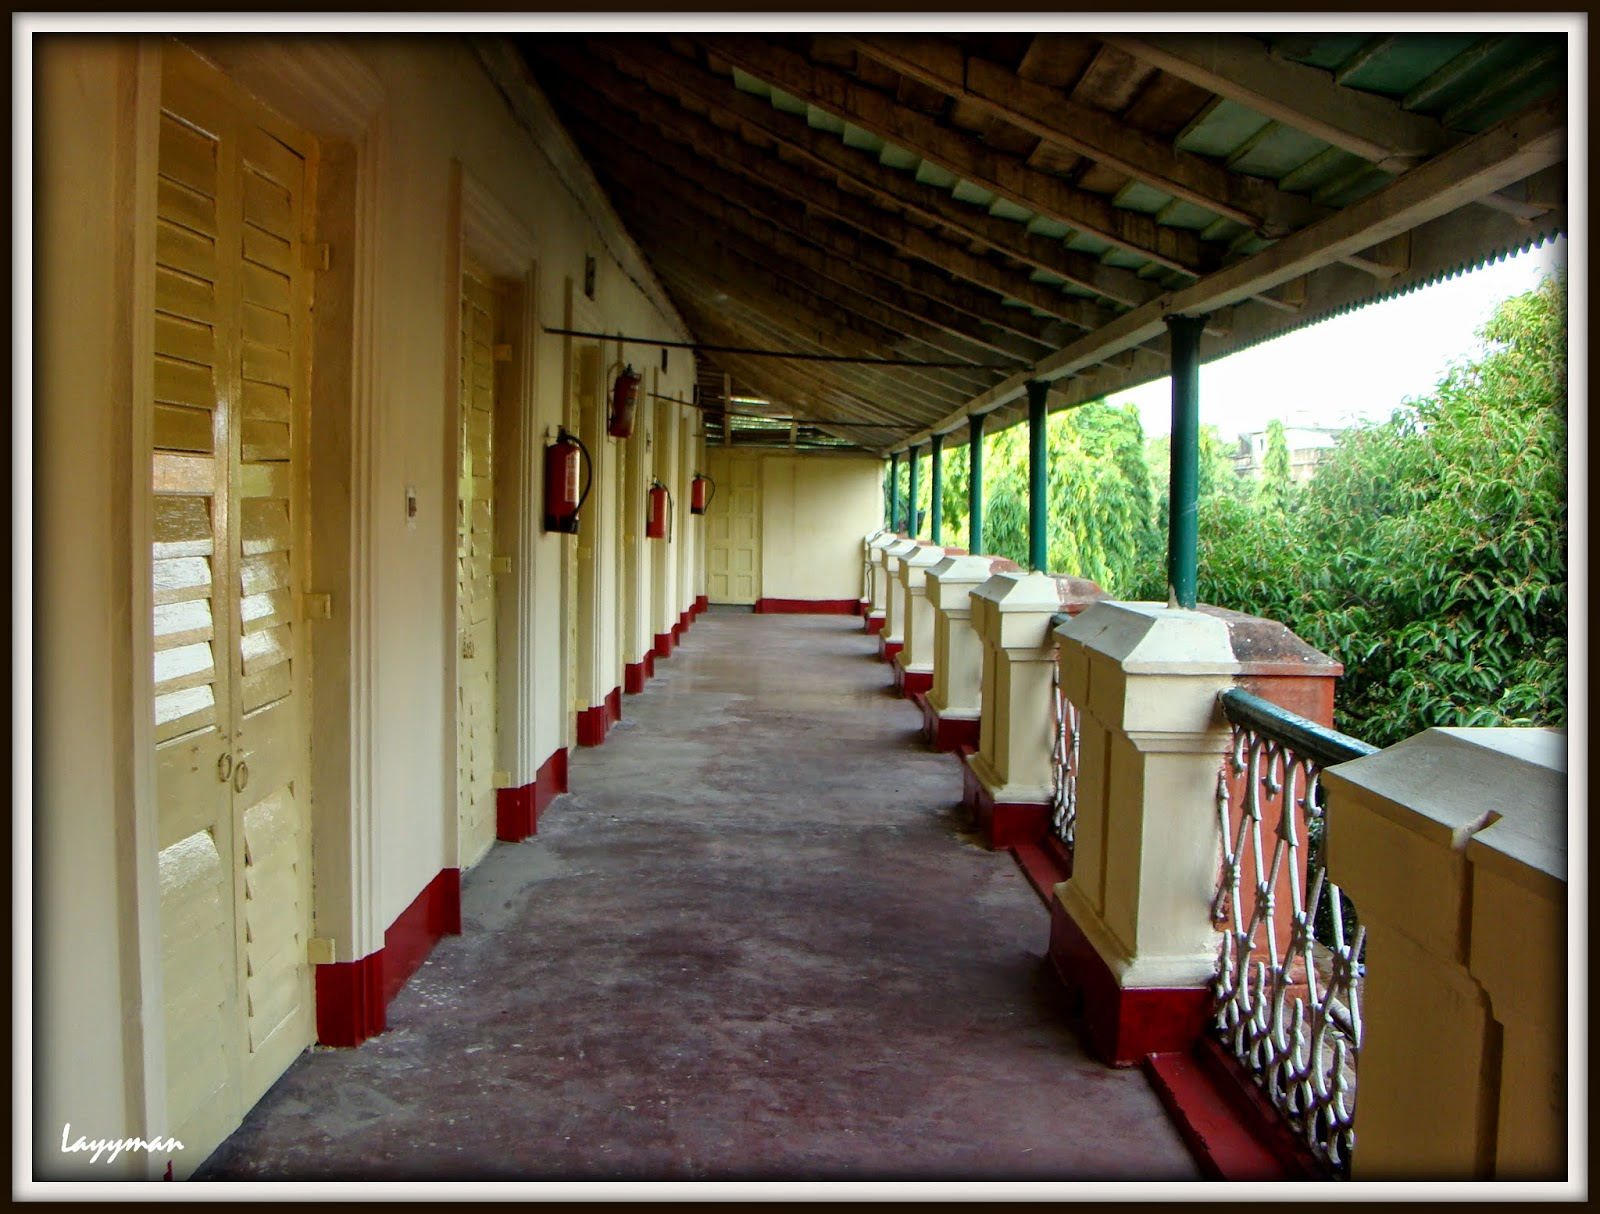 Outer verandah on 2nd floor. Jorasanko Thakur Bari